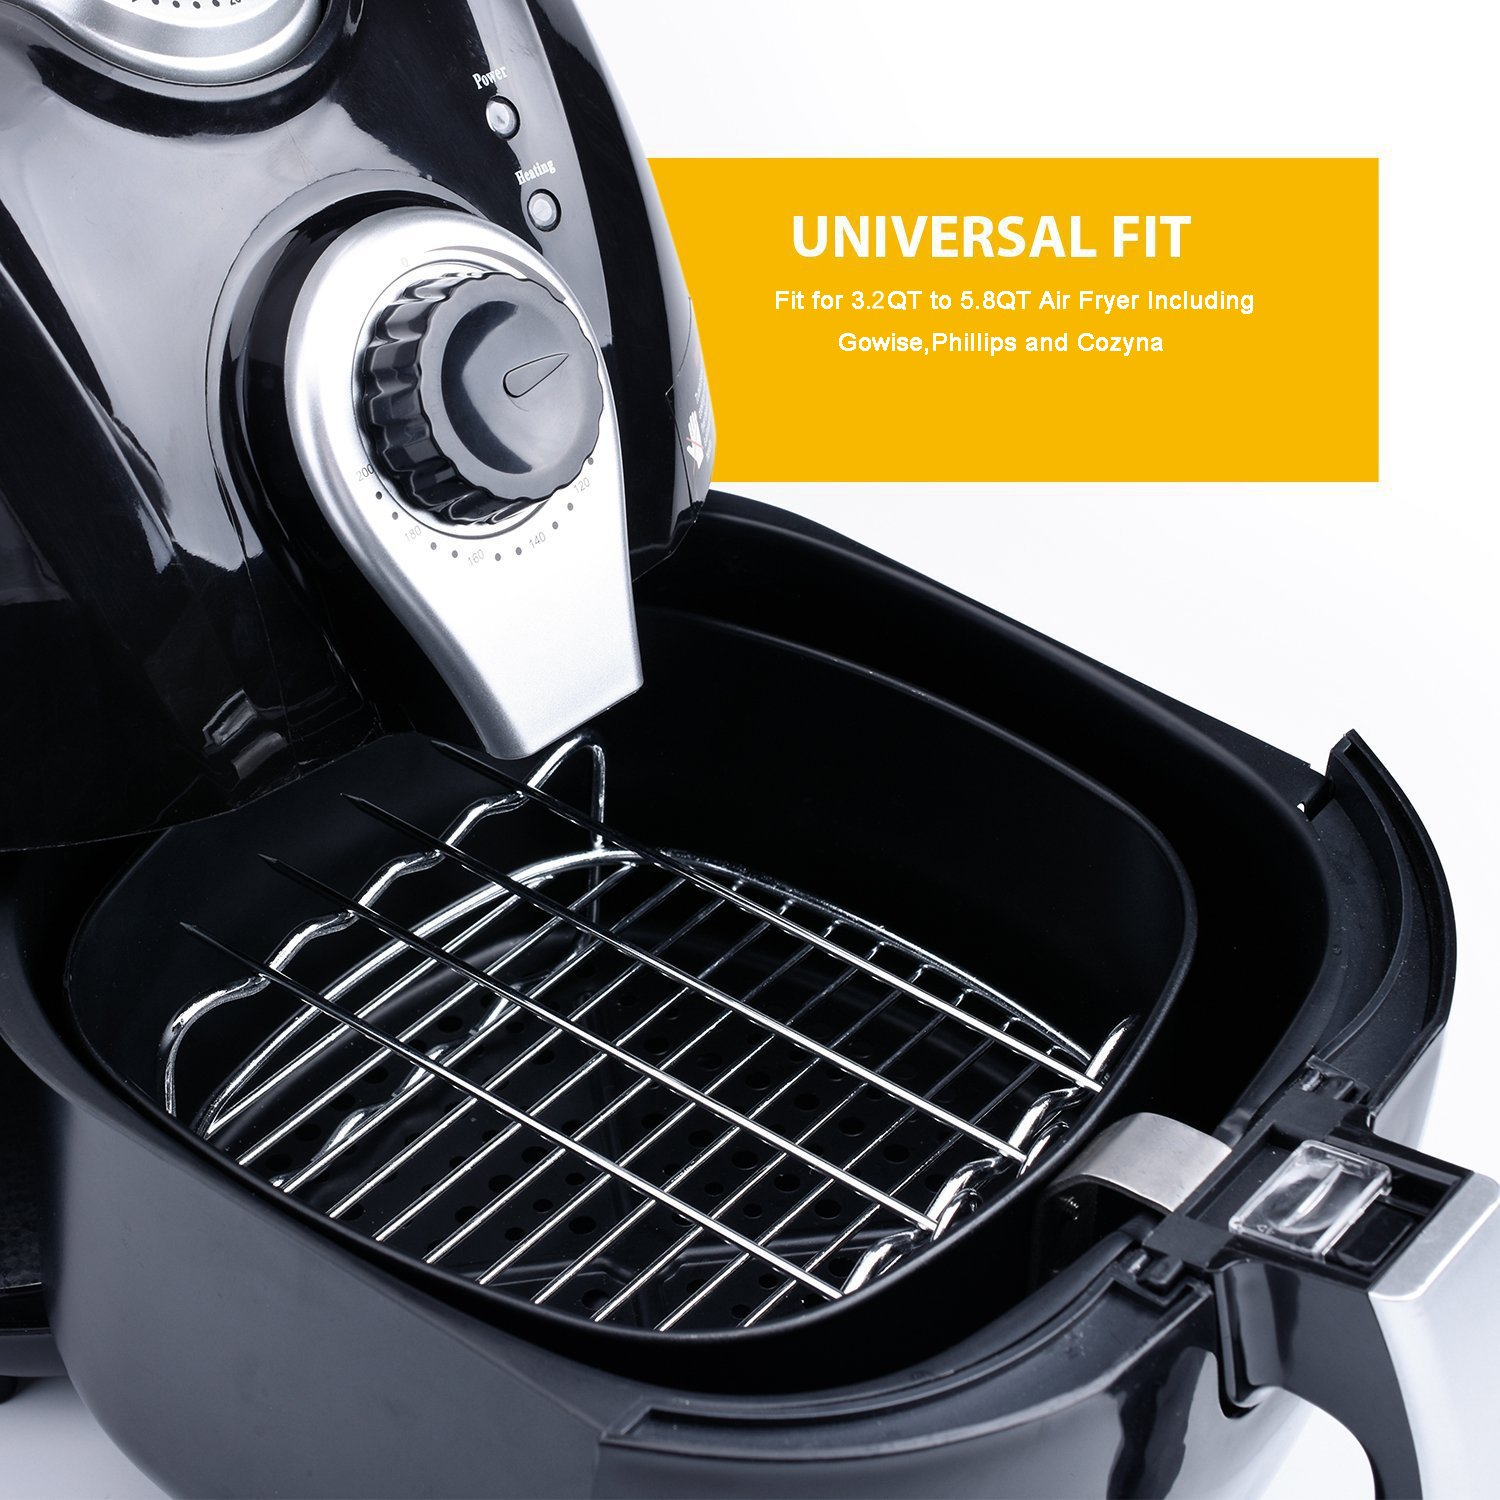 Universal Air Fryer Accessories for Phillips Gowise Cozyna etc, 5 Pcs of kit Fit all Standard Air Fryer 3.2-4.5QT by Findingdream (Image #4)